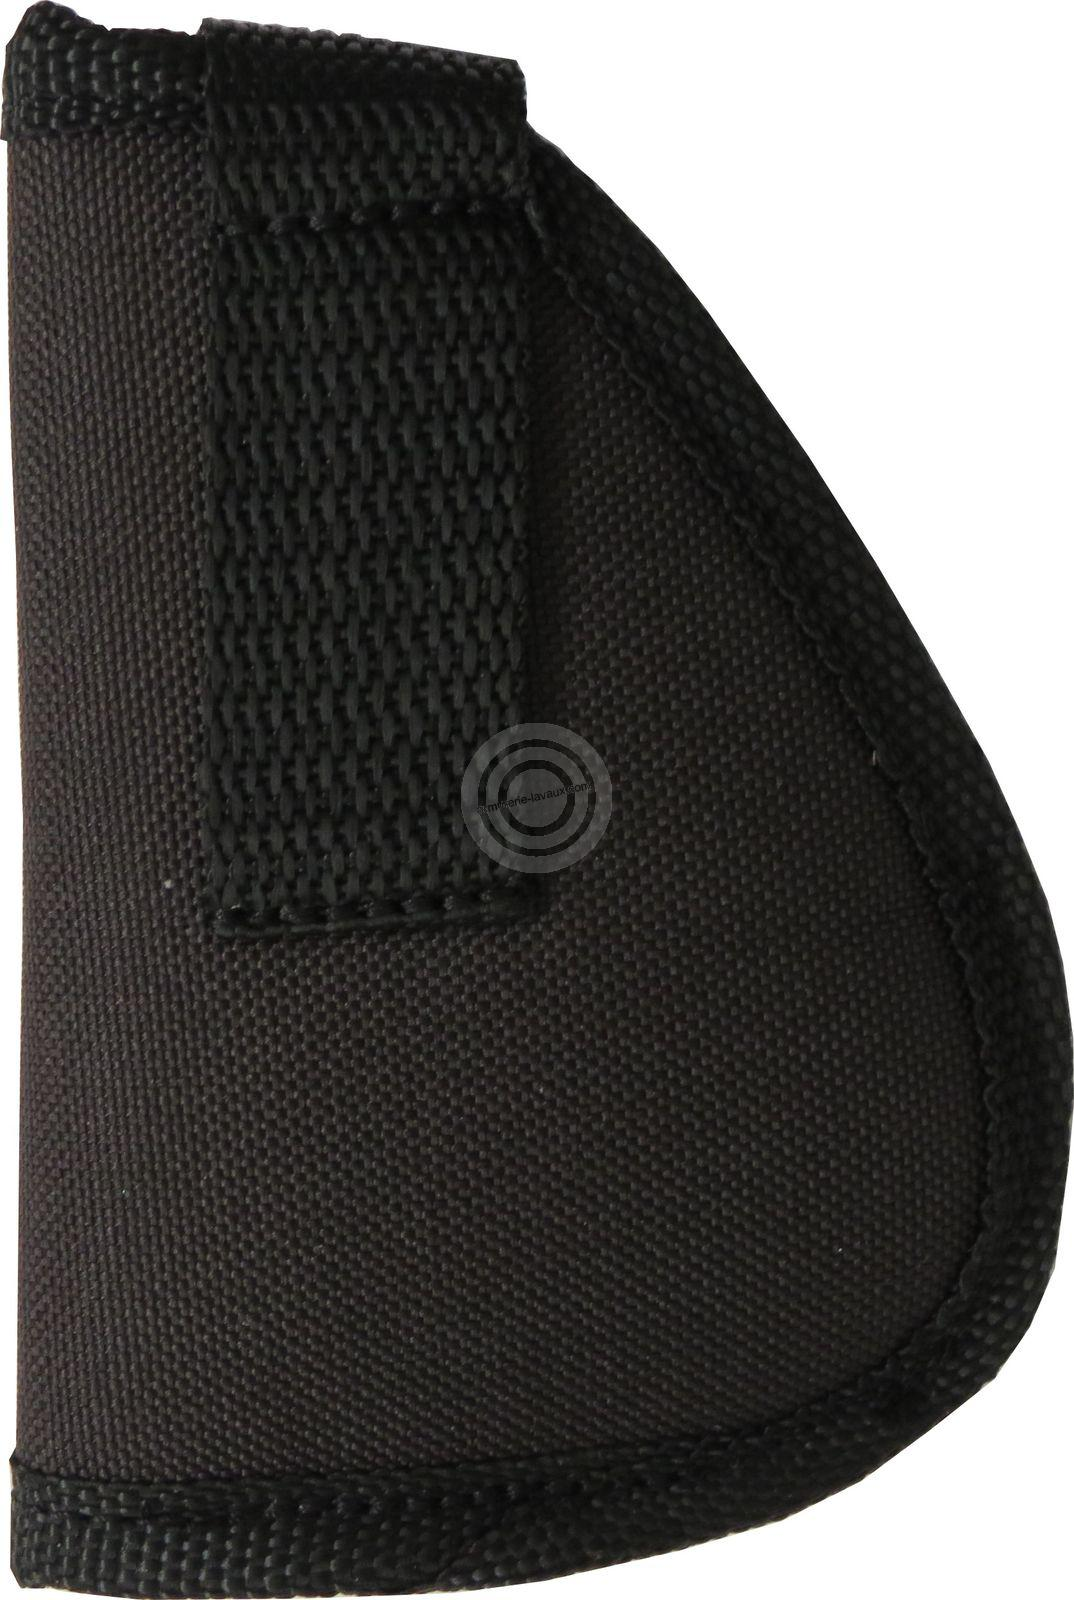 Hoslter cordura pour Walther PDP